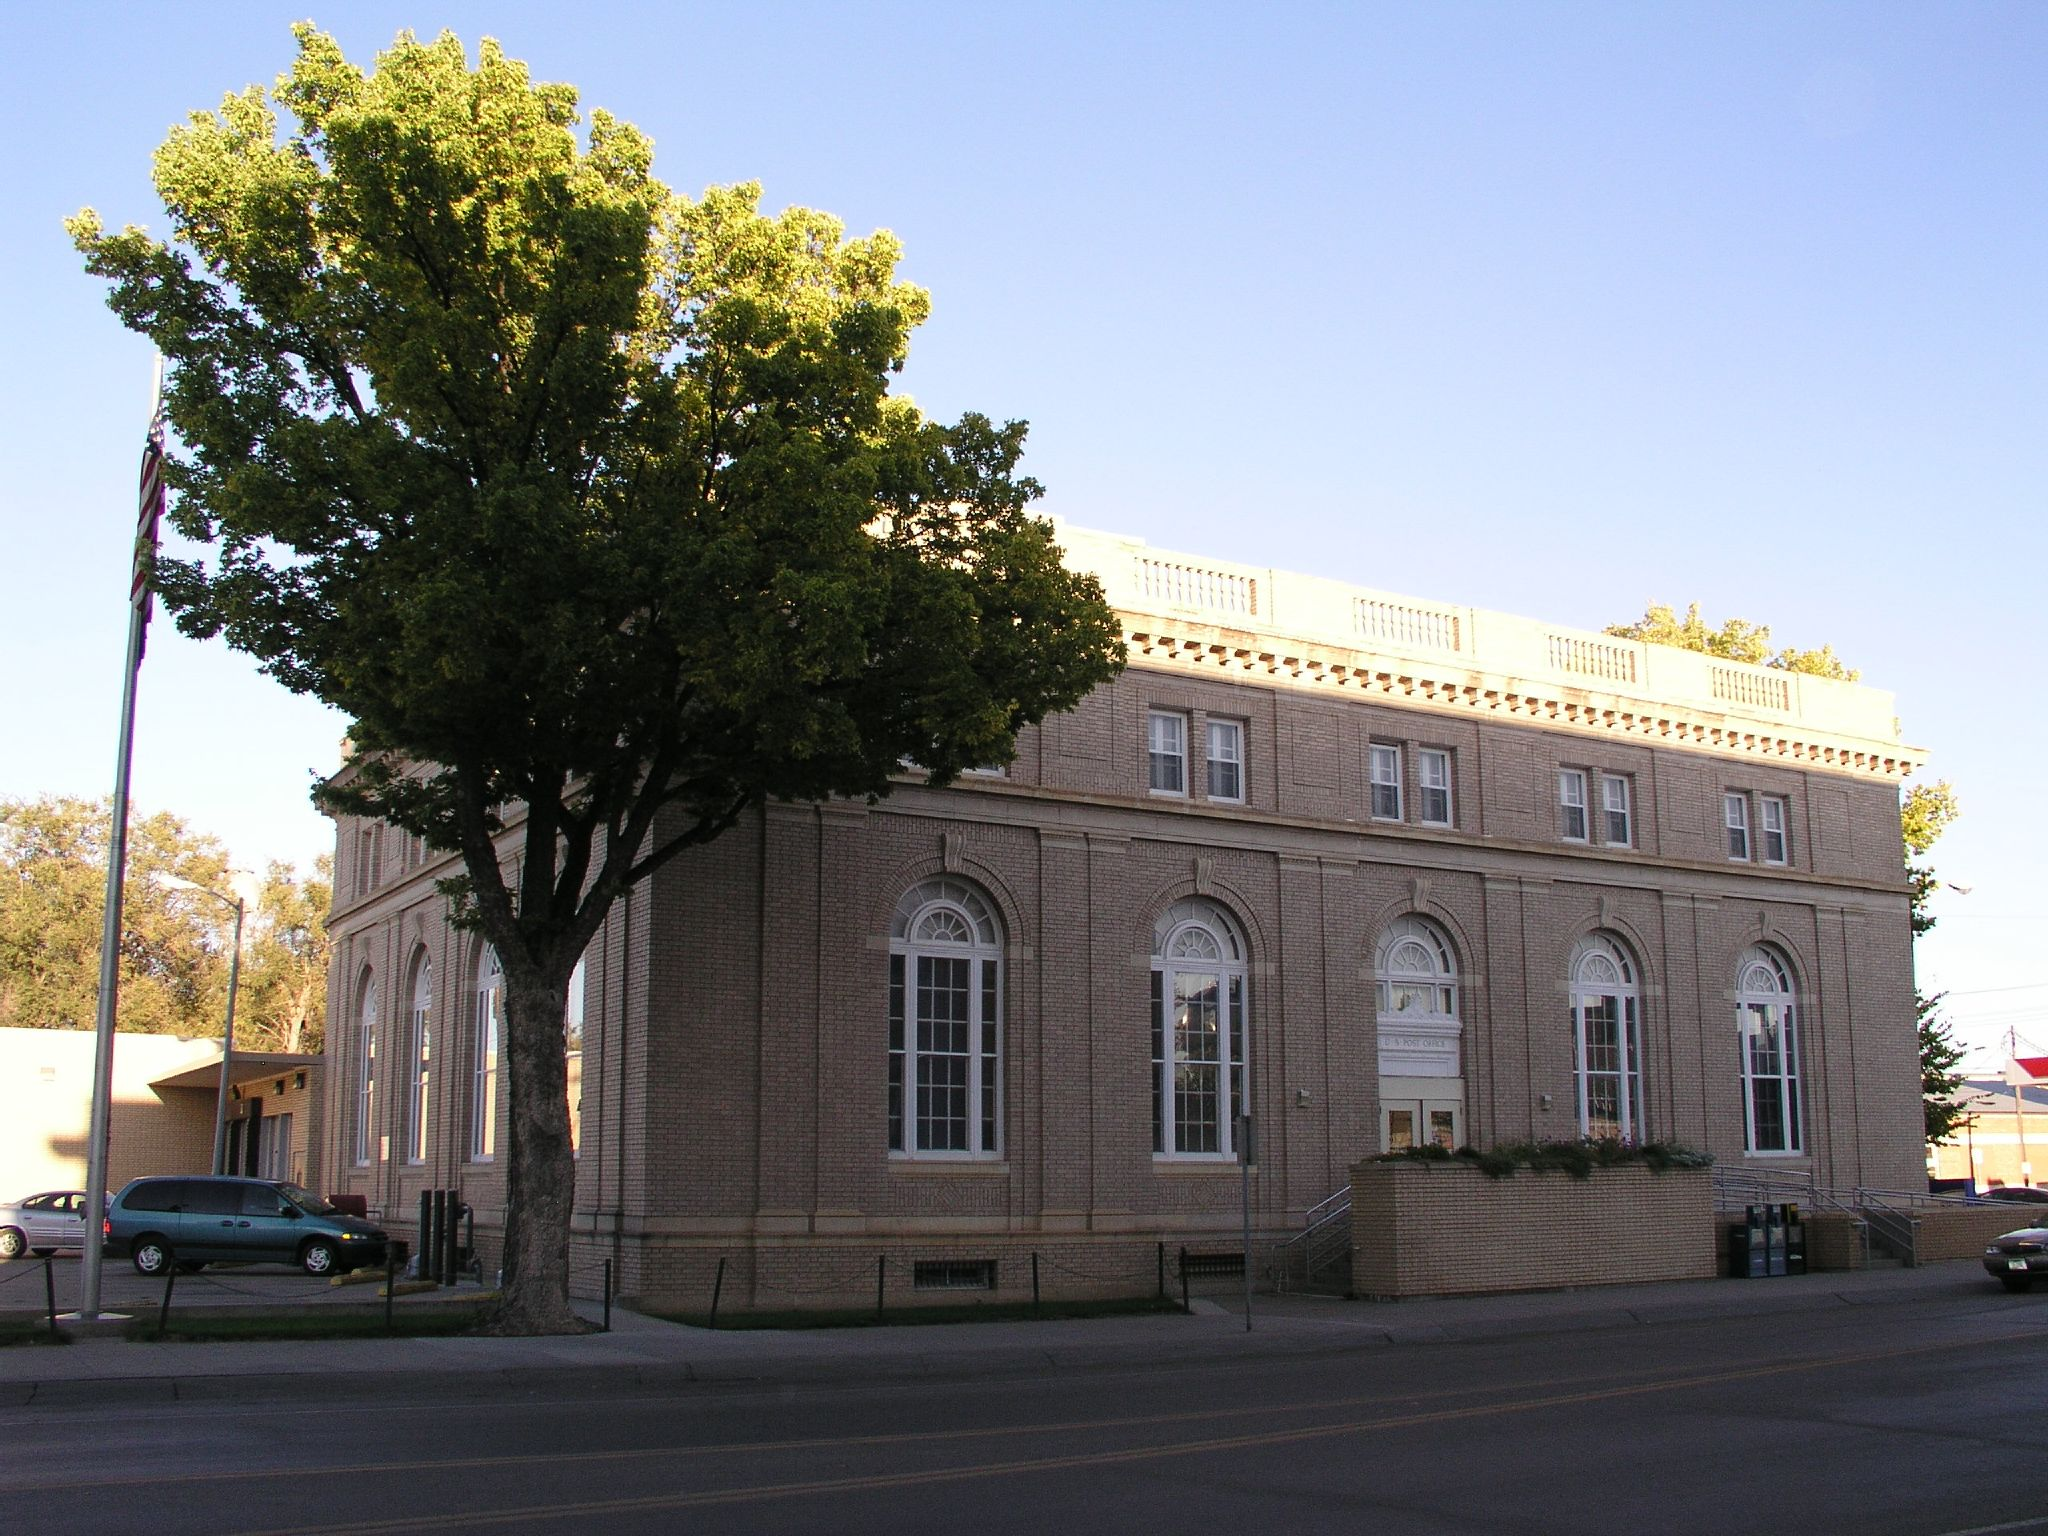 Miles City (MT) United States  city photo : Original file ‎ 2,048 × 1,536 pixels, file size: 521 KB, MIME type ...